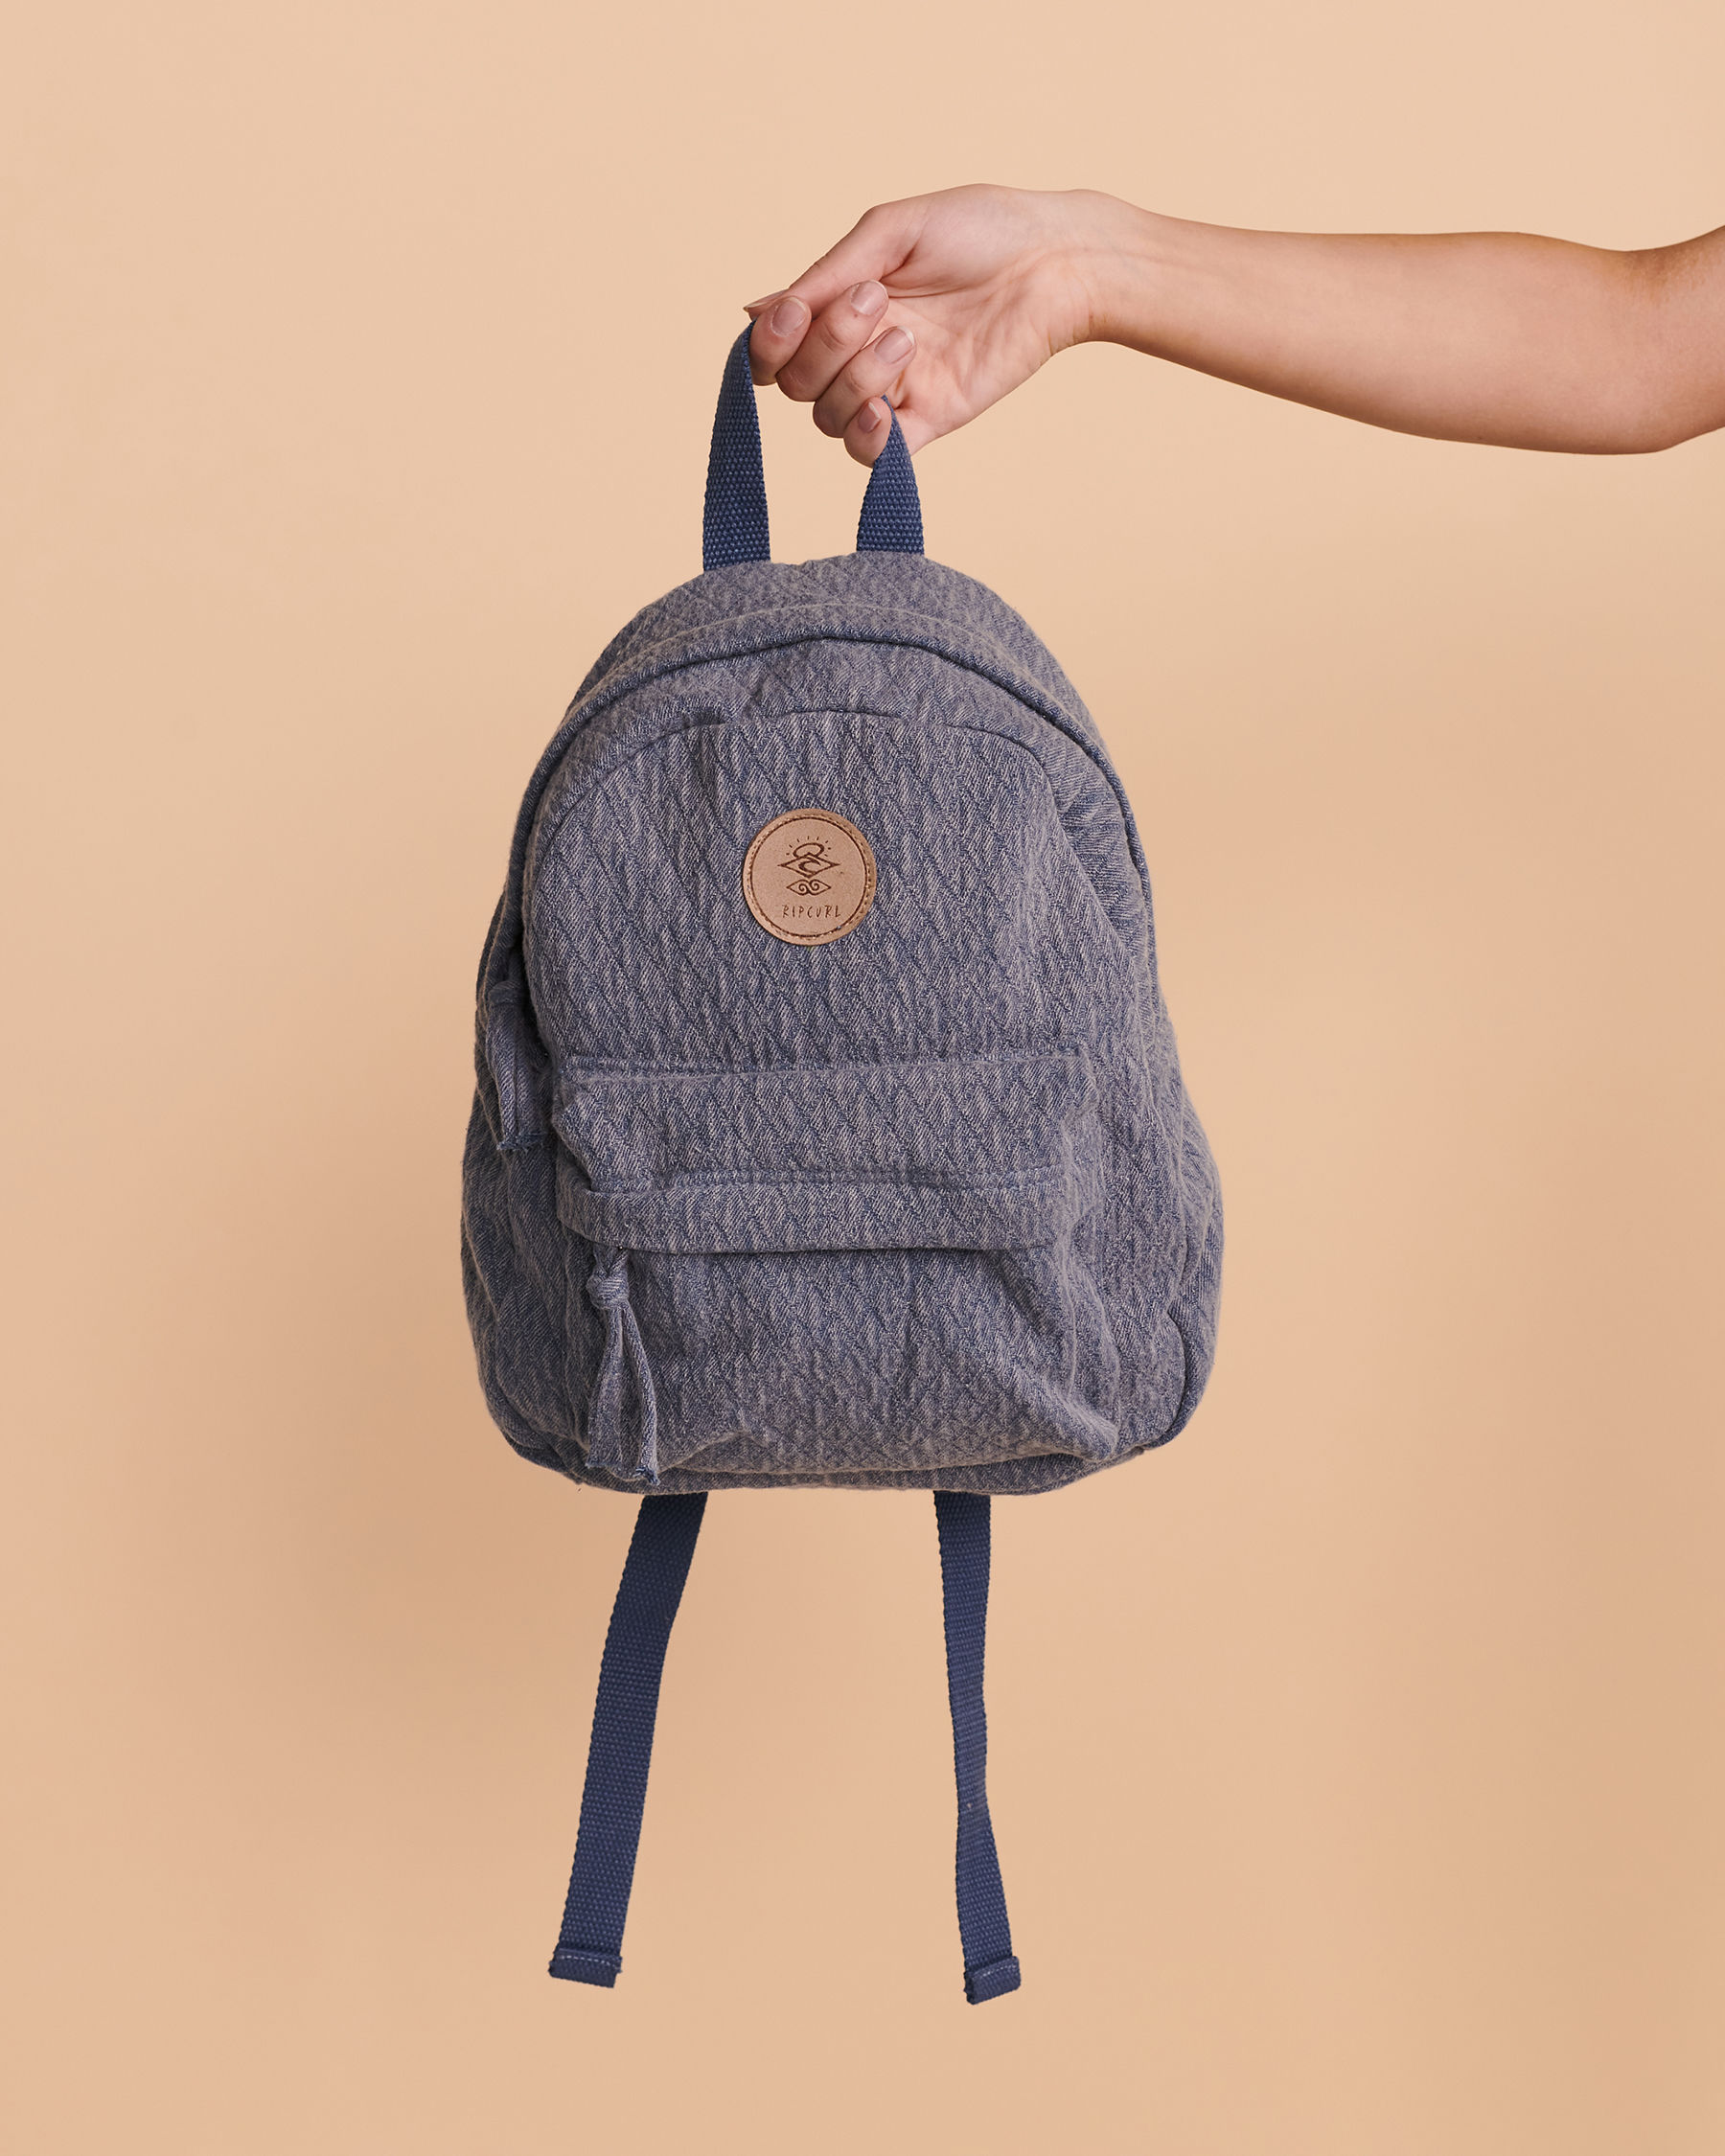 RIP CURL Jacquard Cotton Mini Backpack Washed navy LBPOP1 - View2